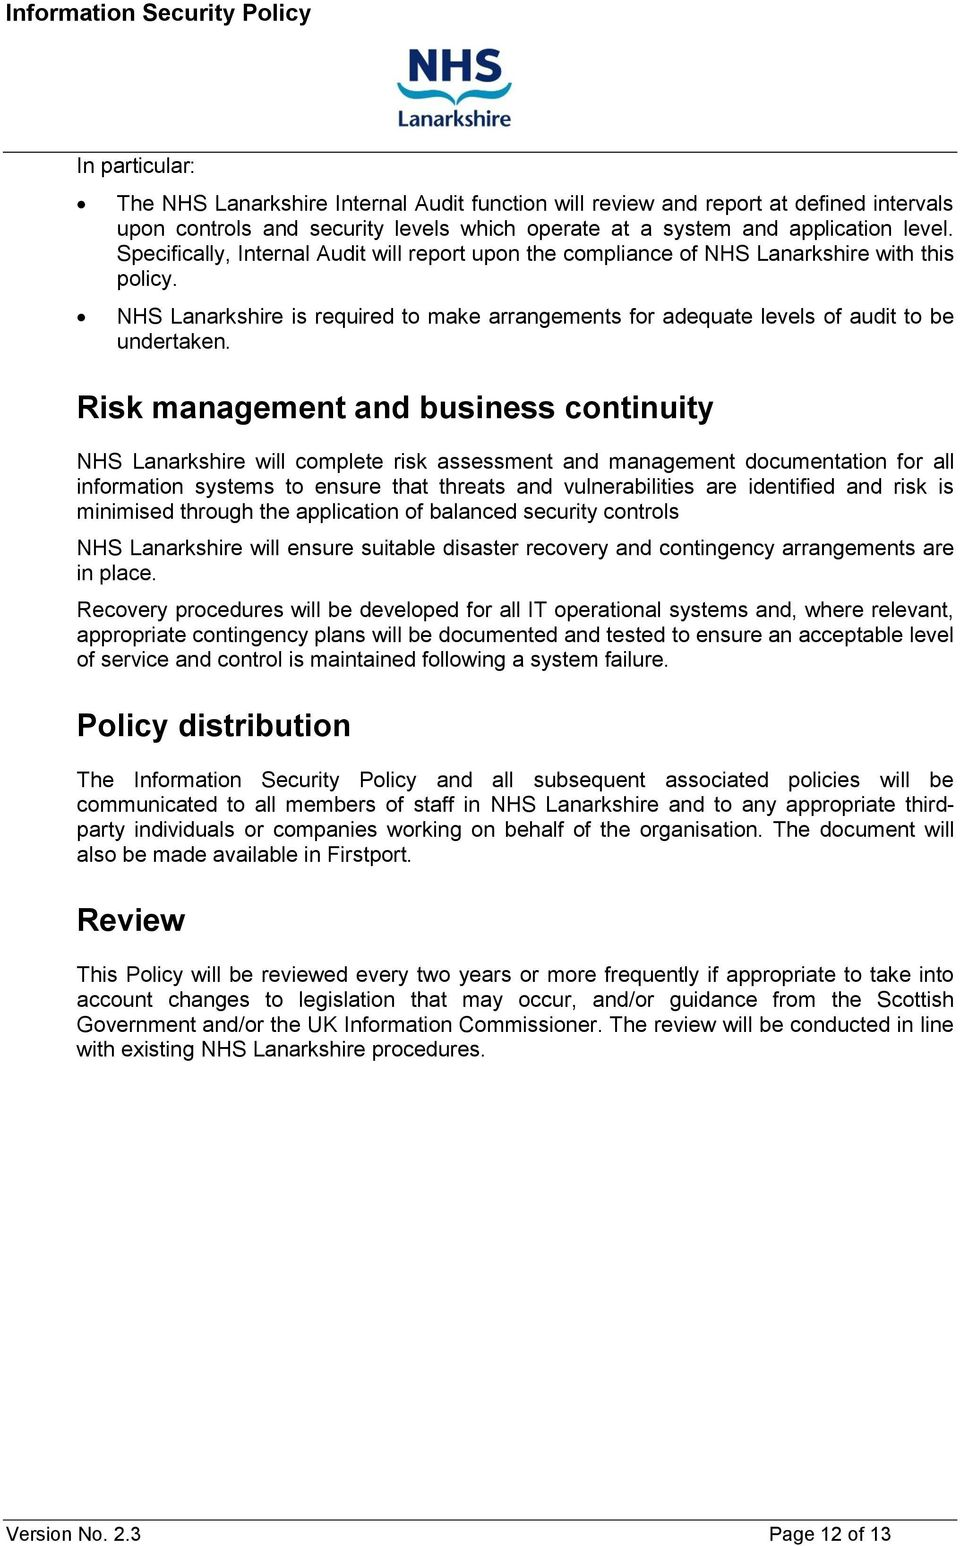 Risk management and business continuity NHS Lanarkshire will complete risk assessment and management documentation for all information systems to ensure that threats and vulnerabilities are